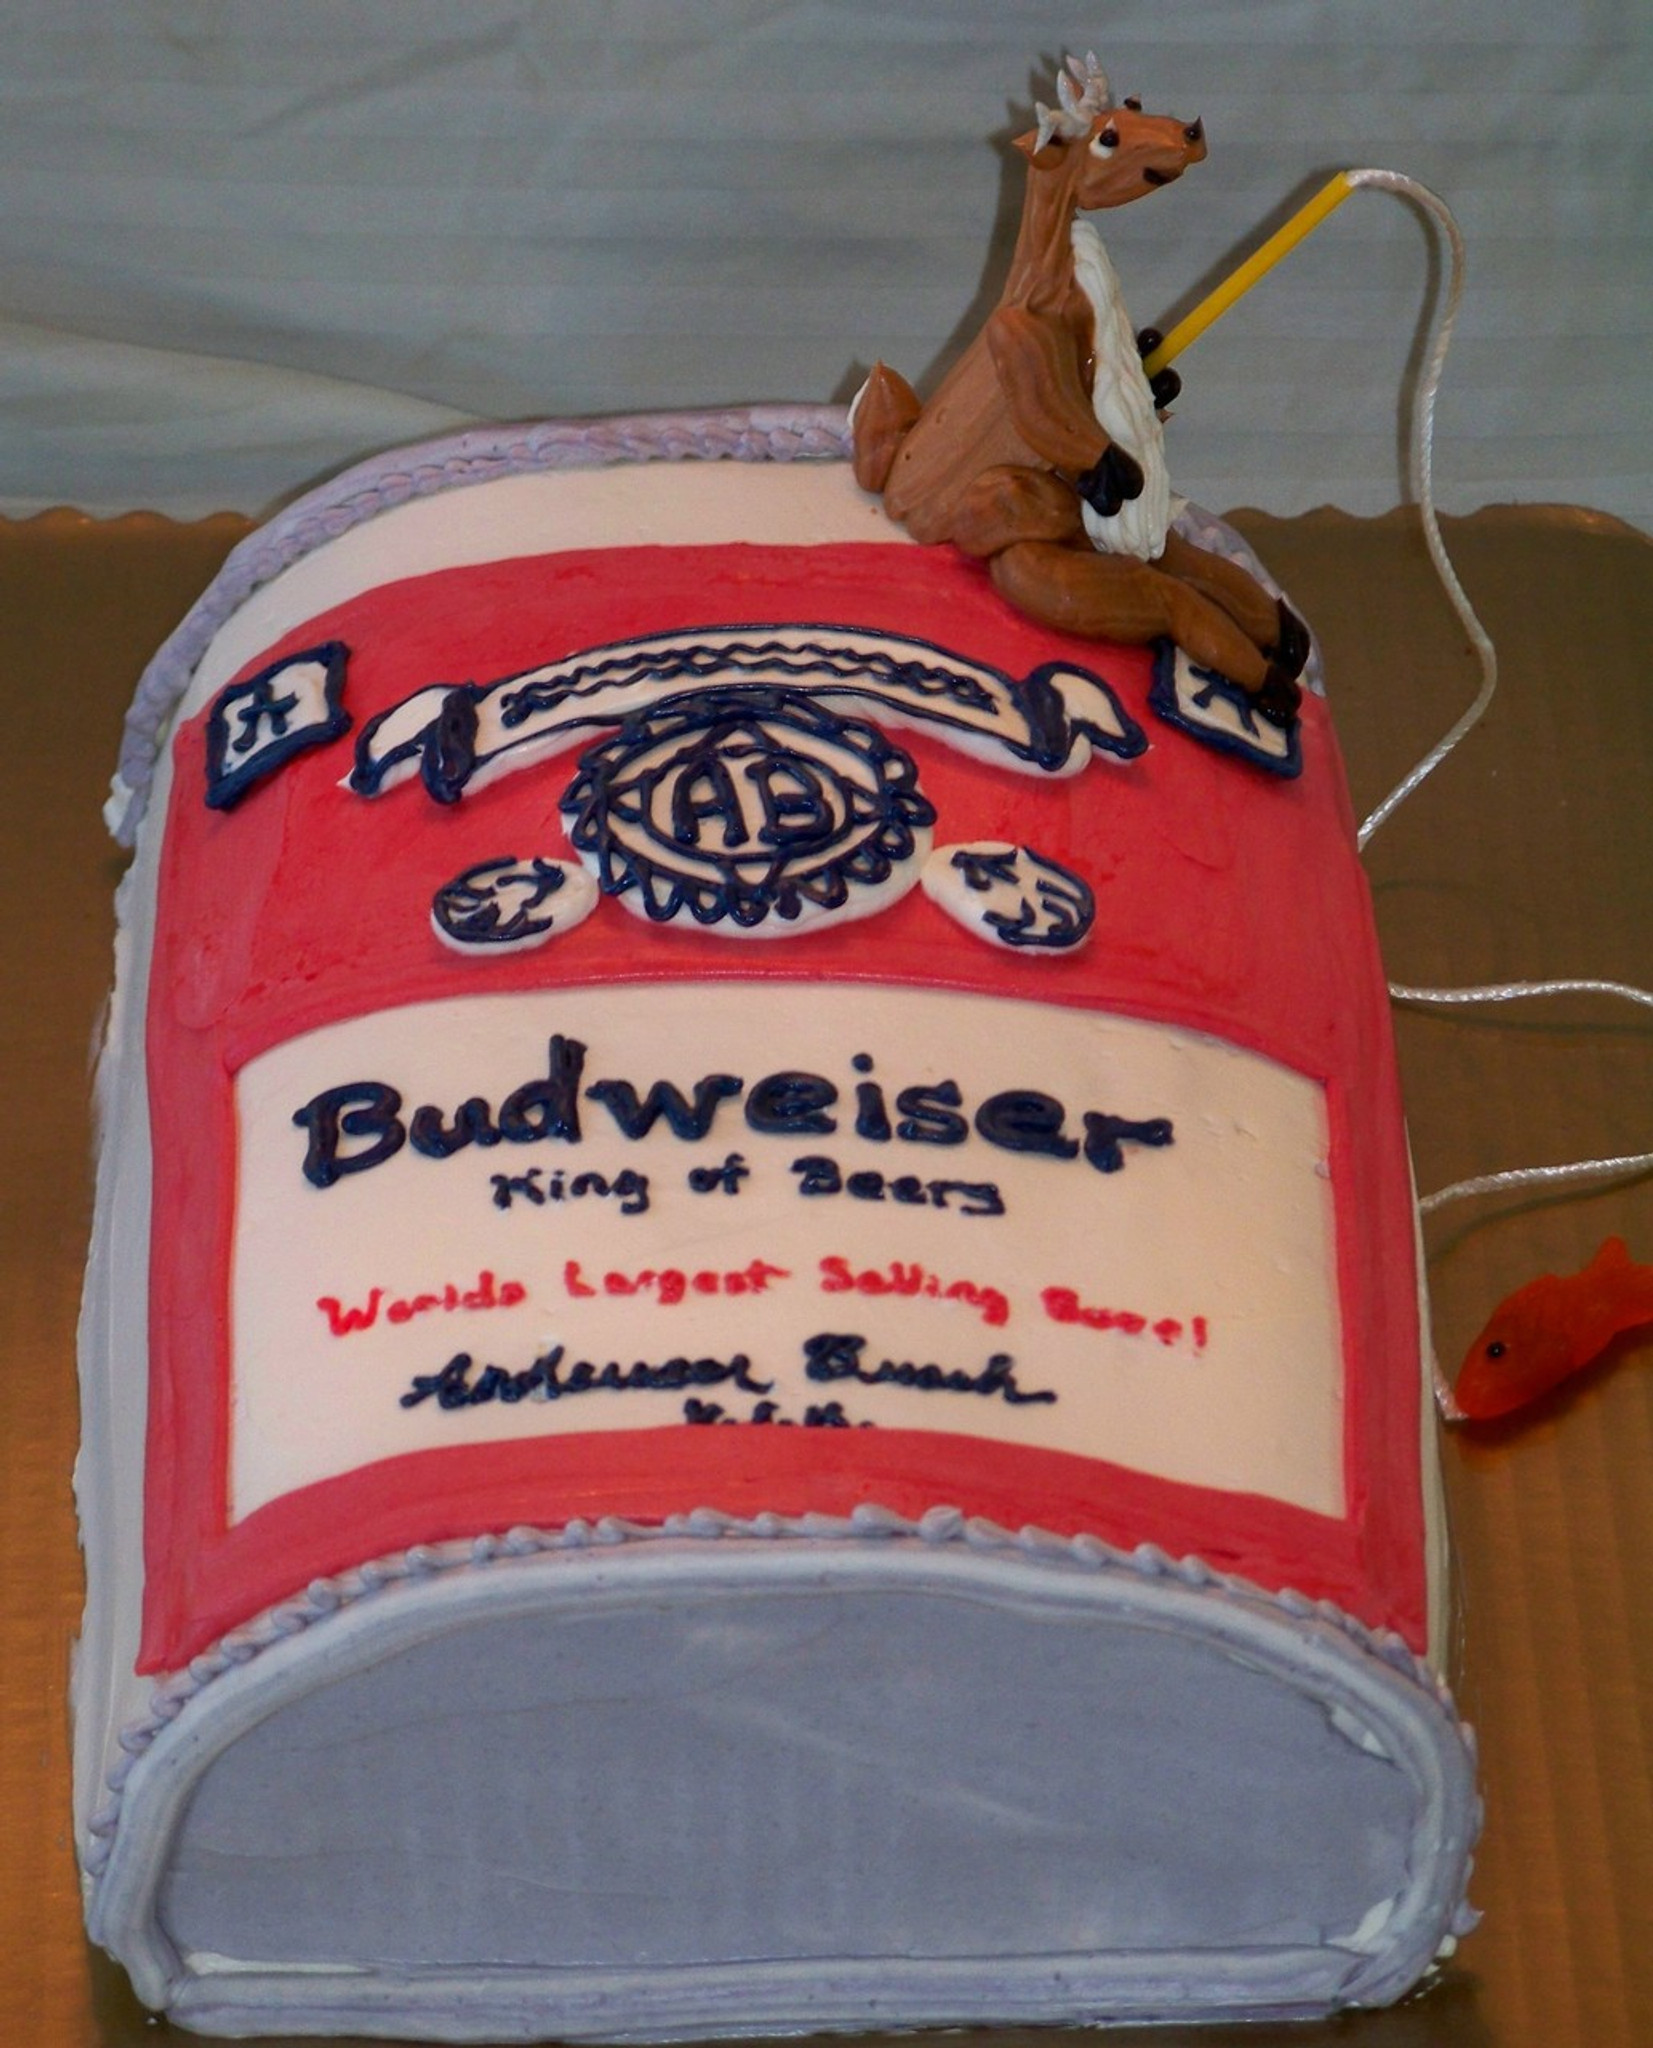 Fantastic Budweiser Beer Cake Price Per Serving Funny Birthday Cards Online Inifofree Goldxyz